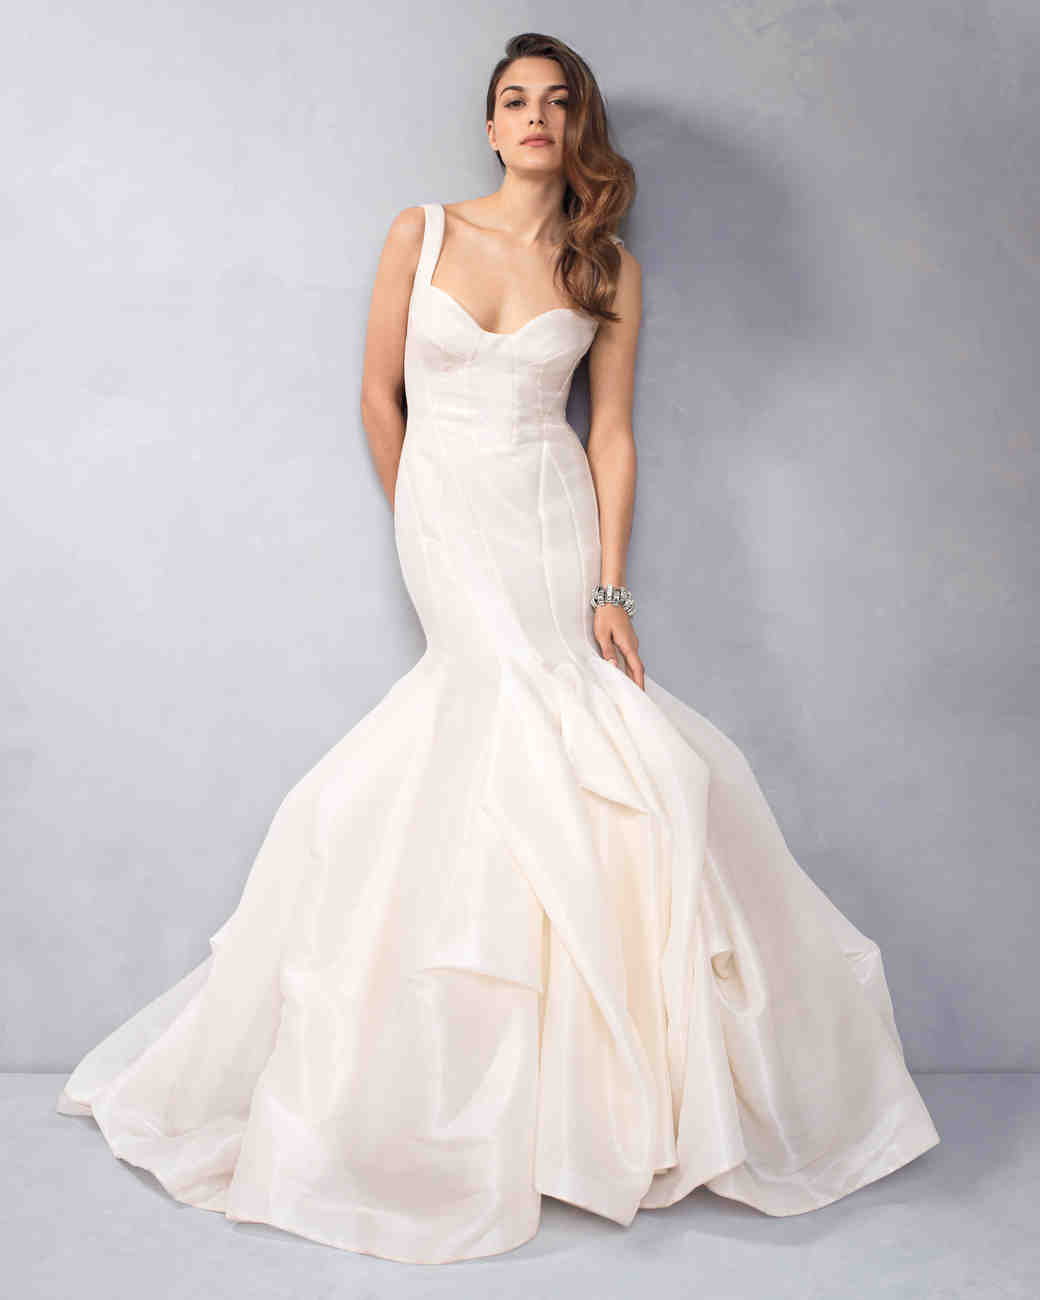 Wedding Gown Trends: Wedding Dress Styles, Two Ways